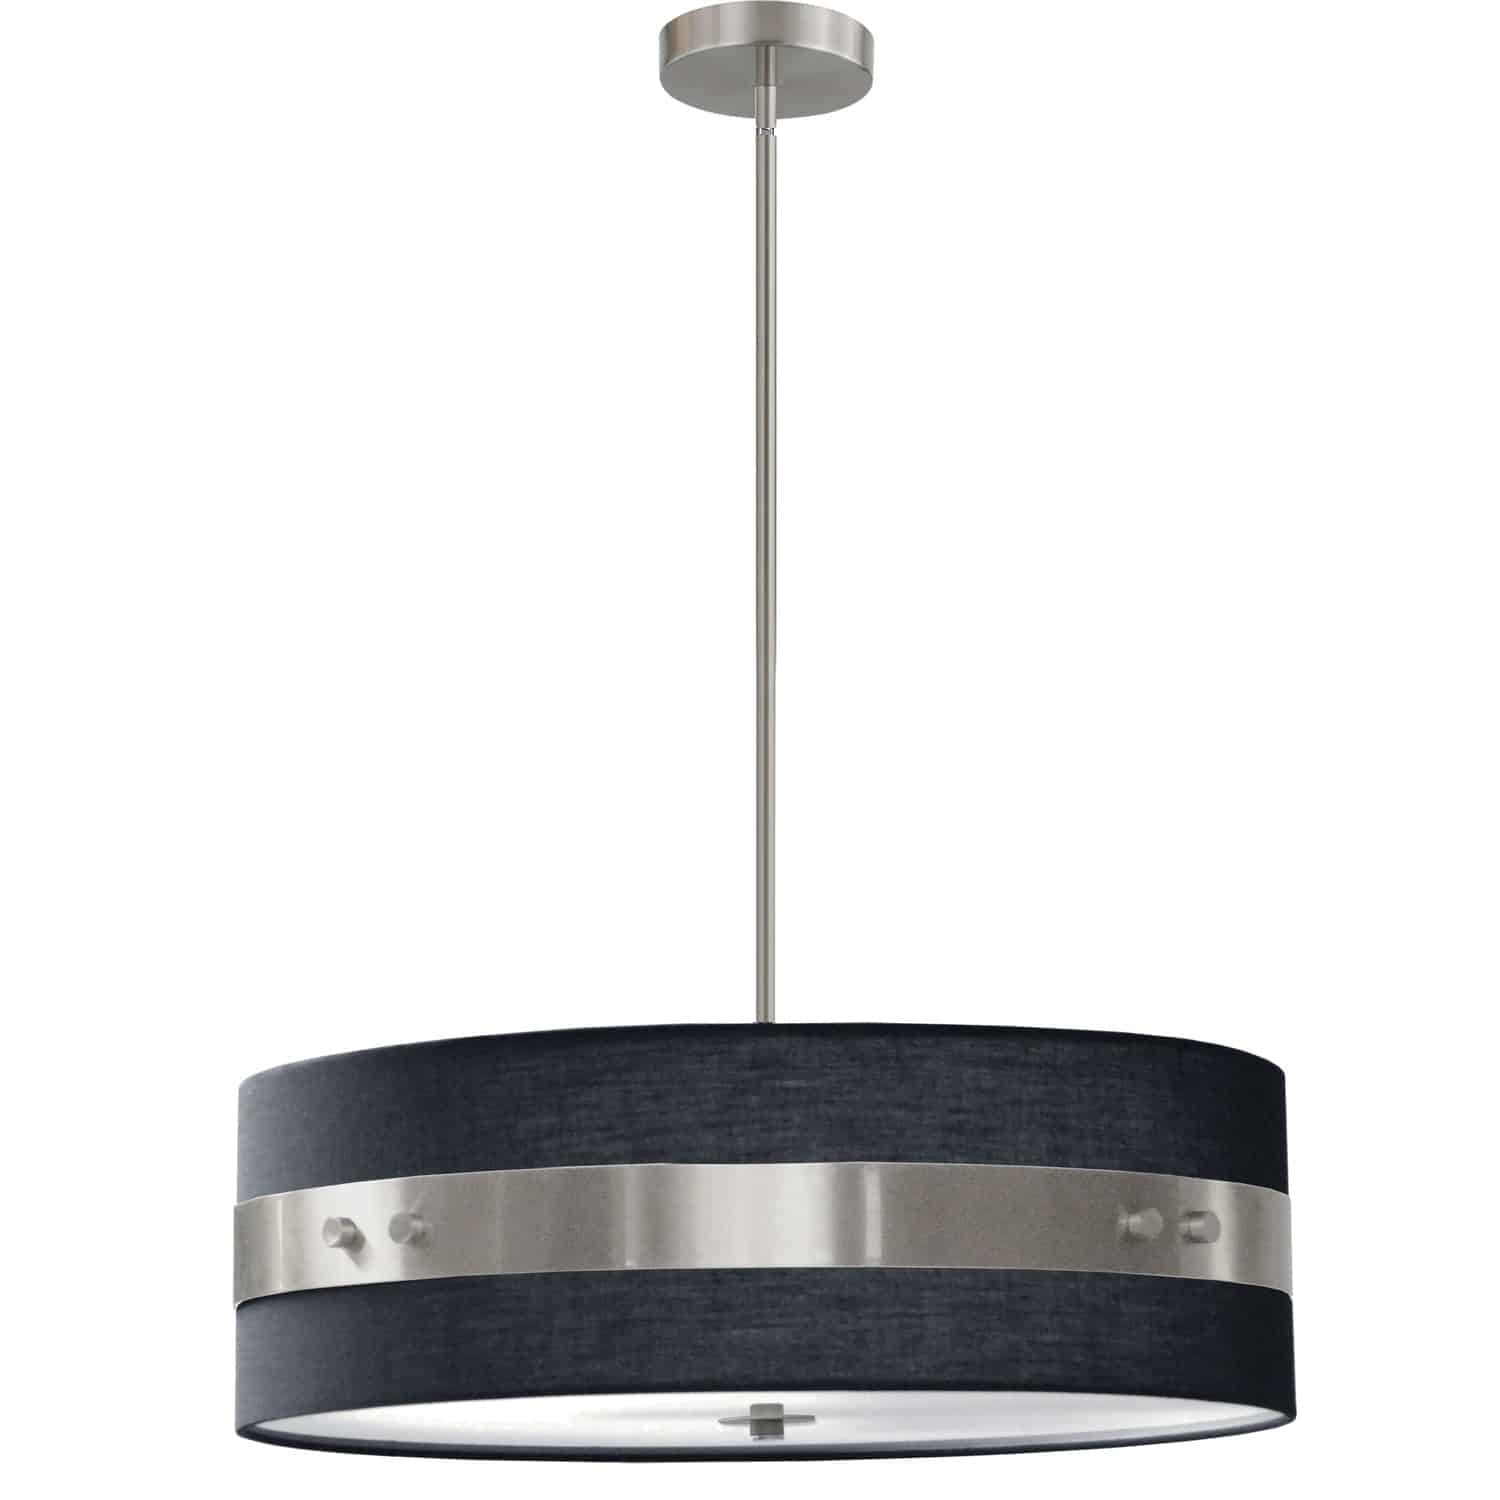 4 Light Incandescent Pendant Satin Chrome Finish with Black Shade